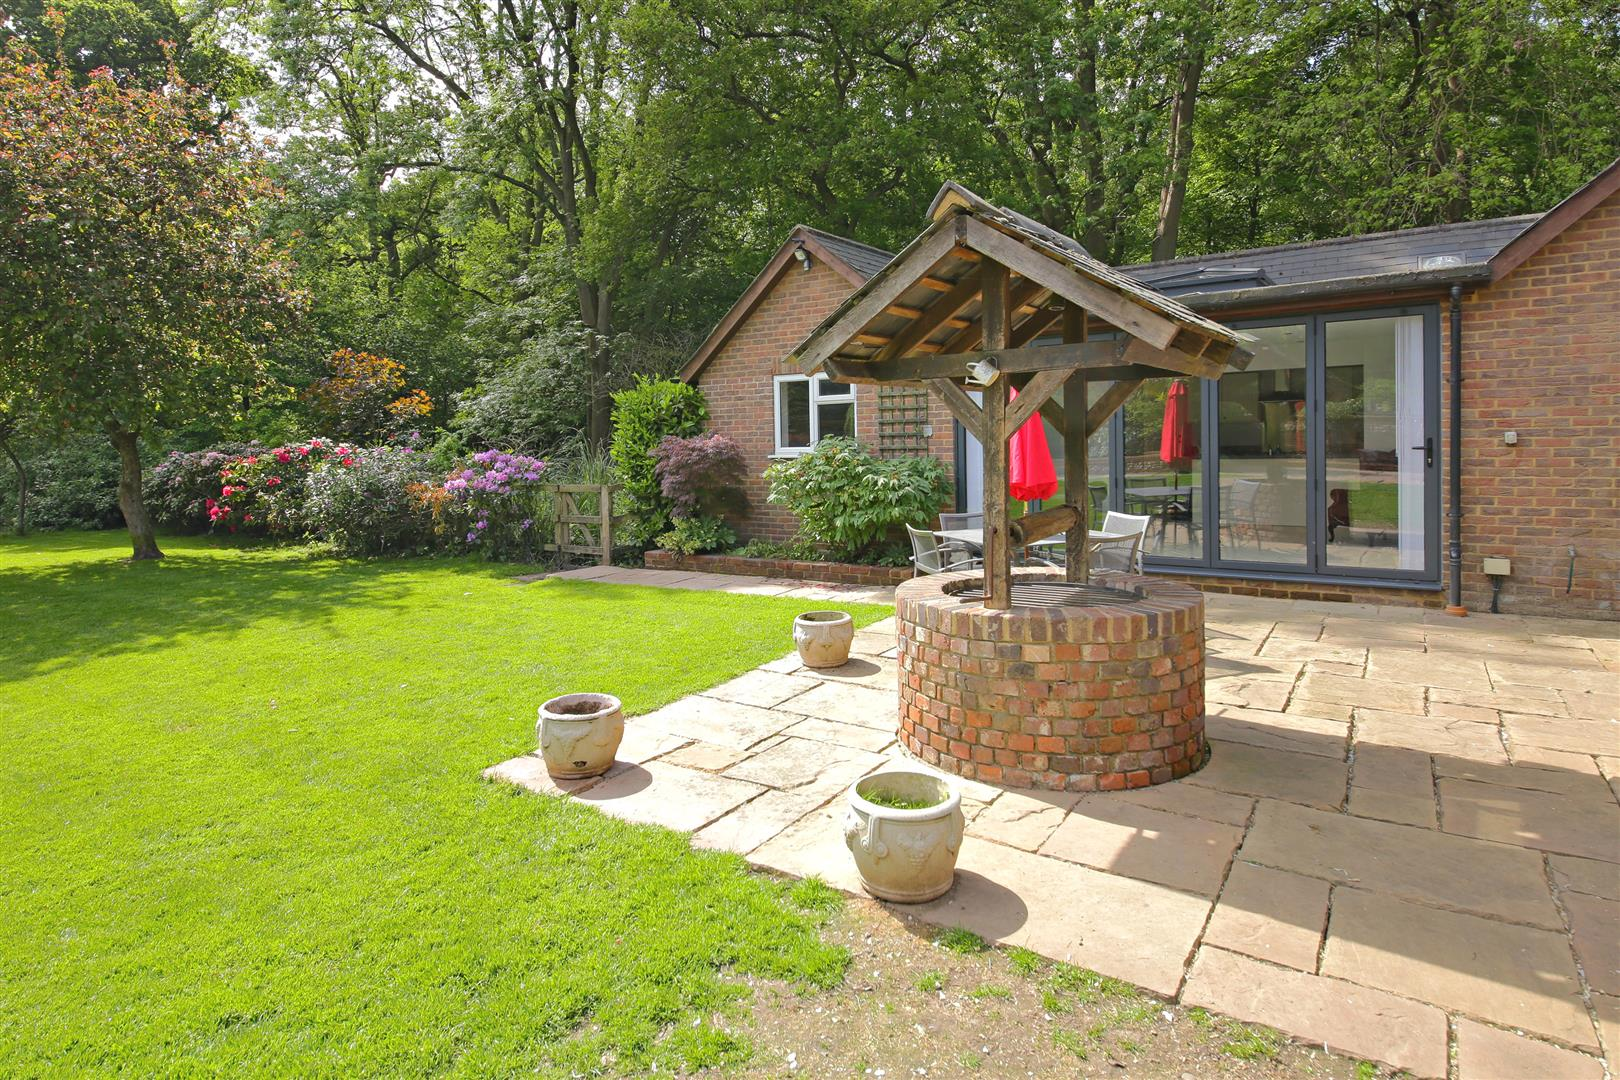 3 bed for sale in Station Road, Bricket Wood - (Property Image 6)